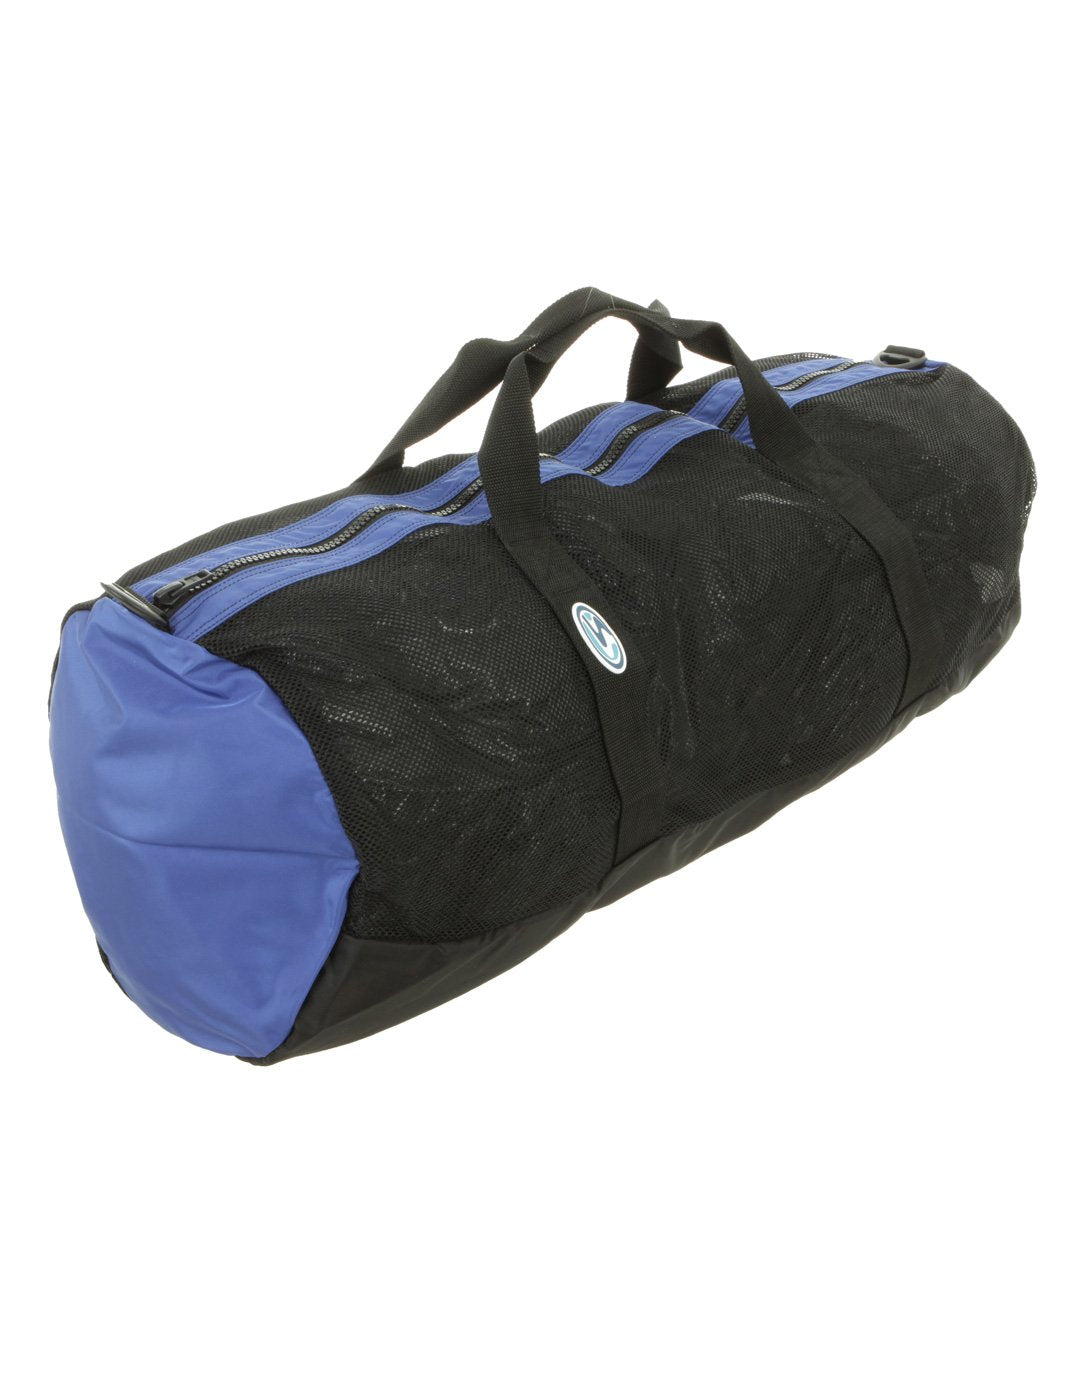 Image of Stahlsac Mesh Duffel - 36 Inch